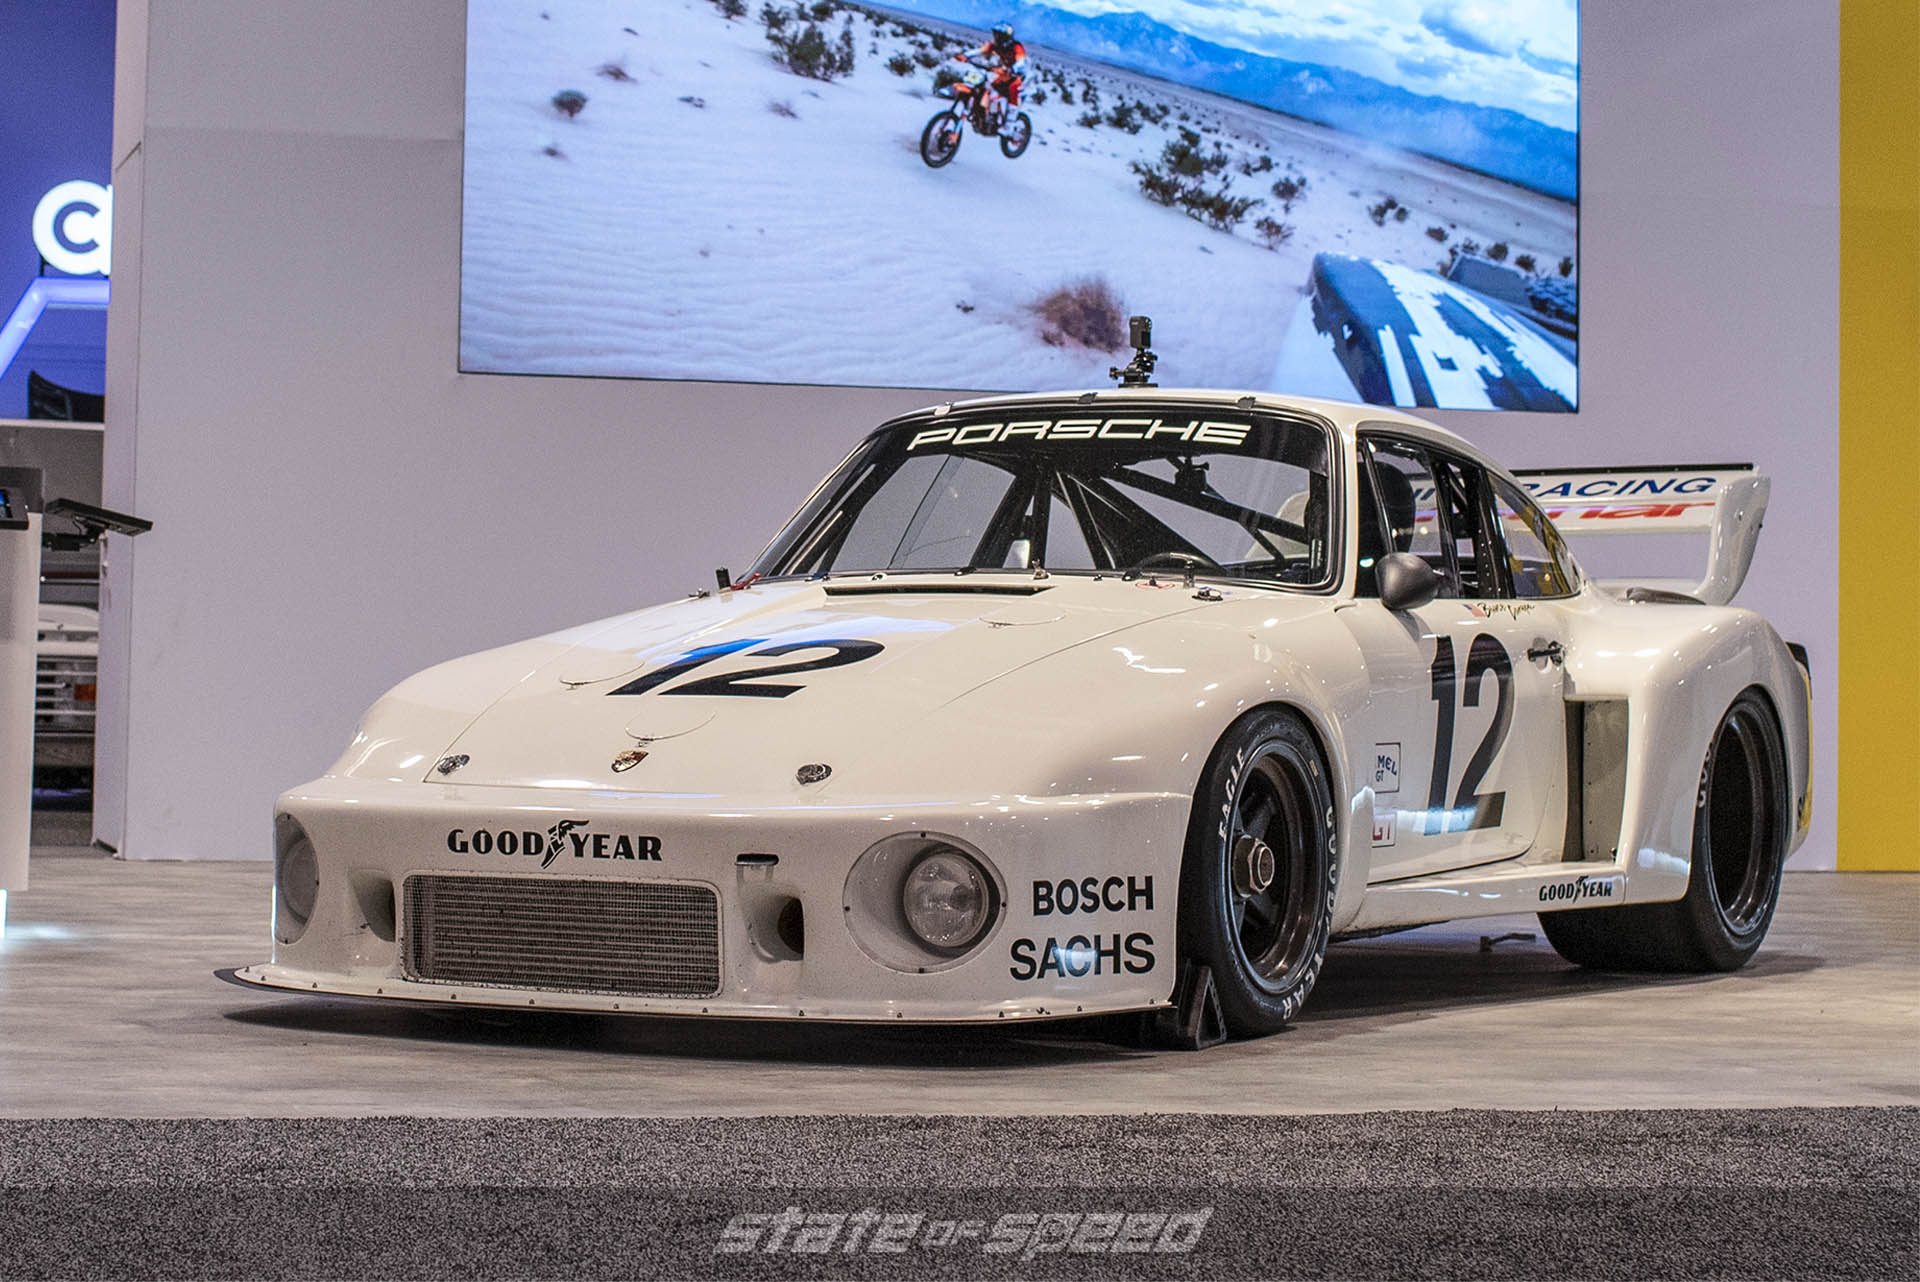 GoPro booth at SEMA displaying a race built Porsche